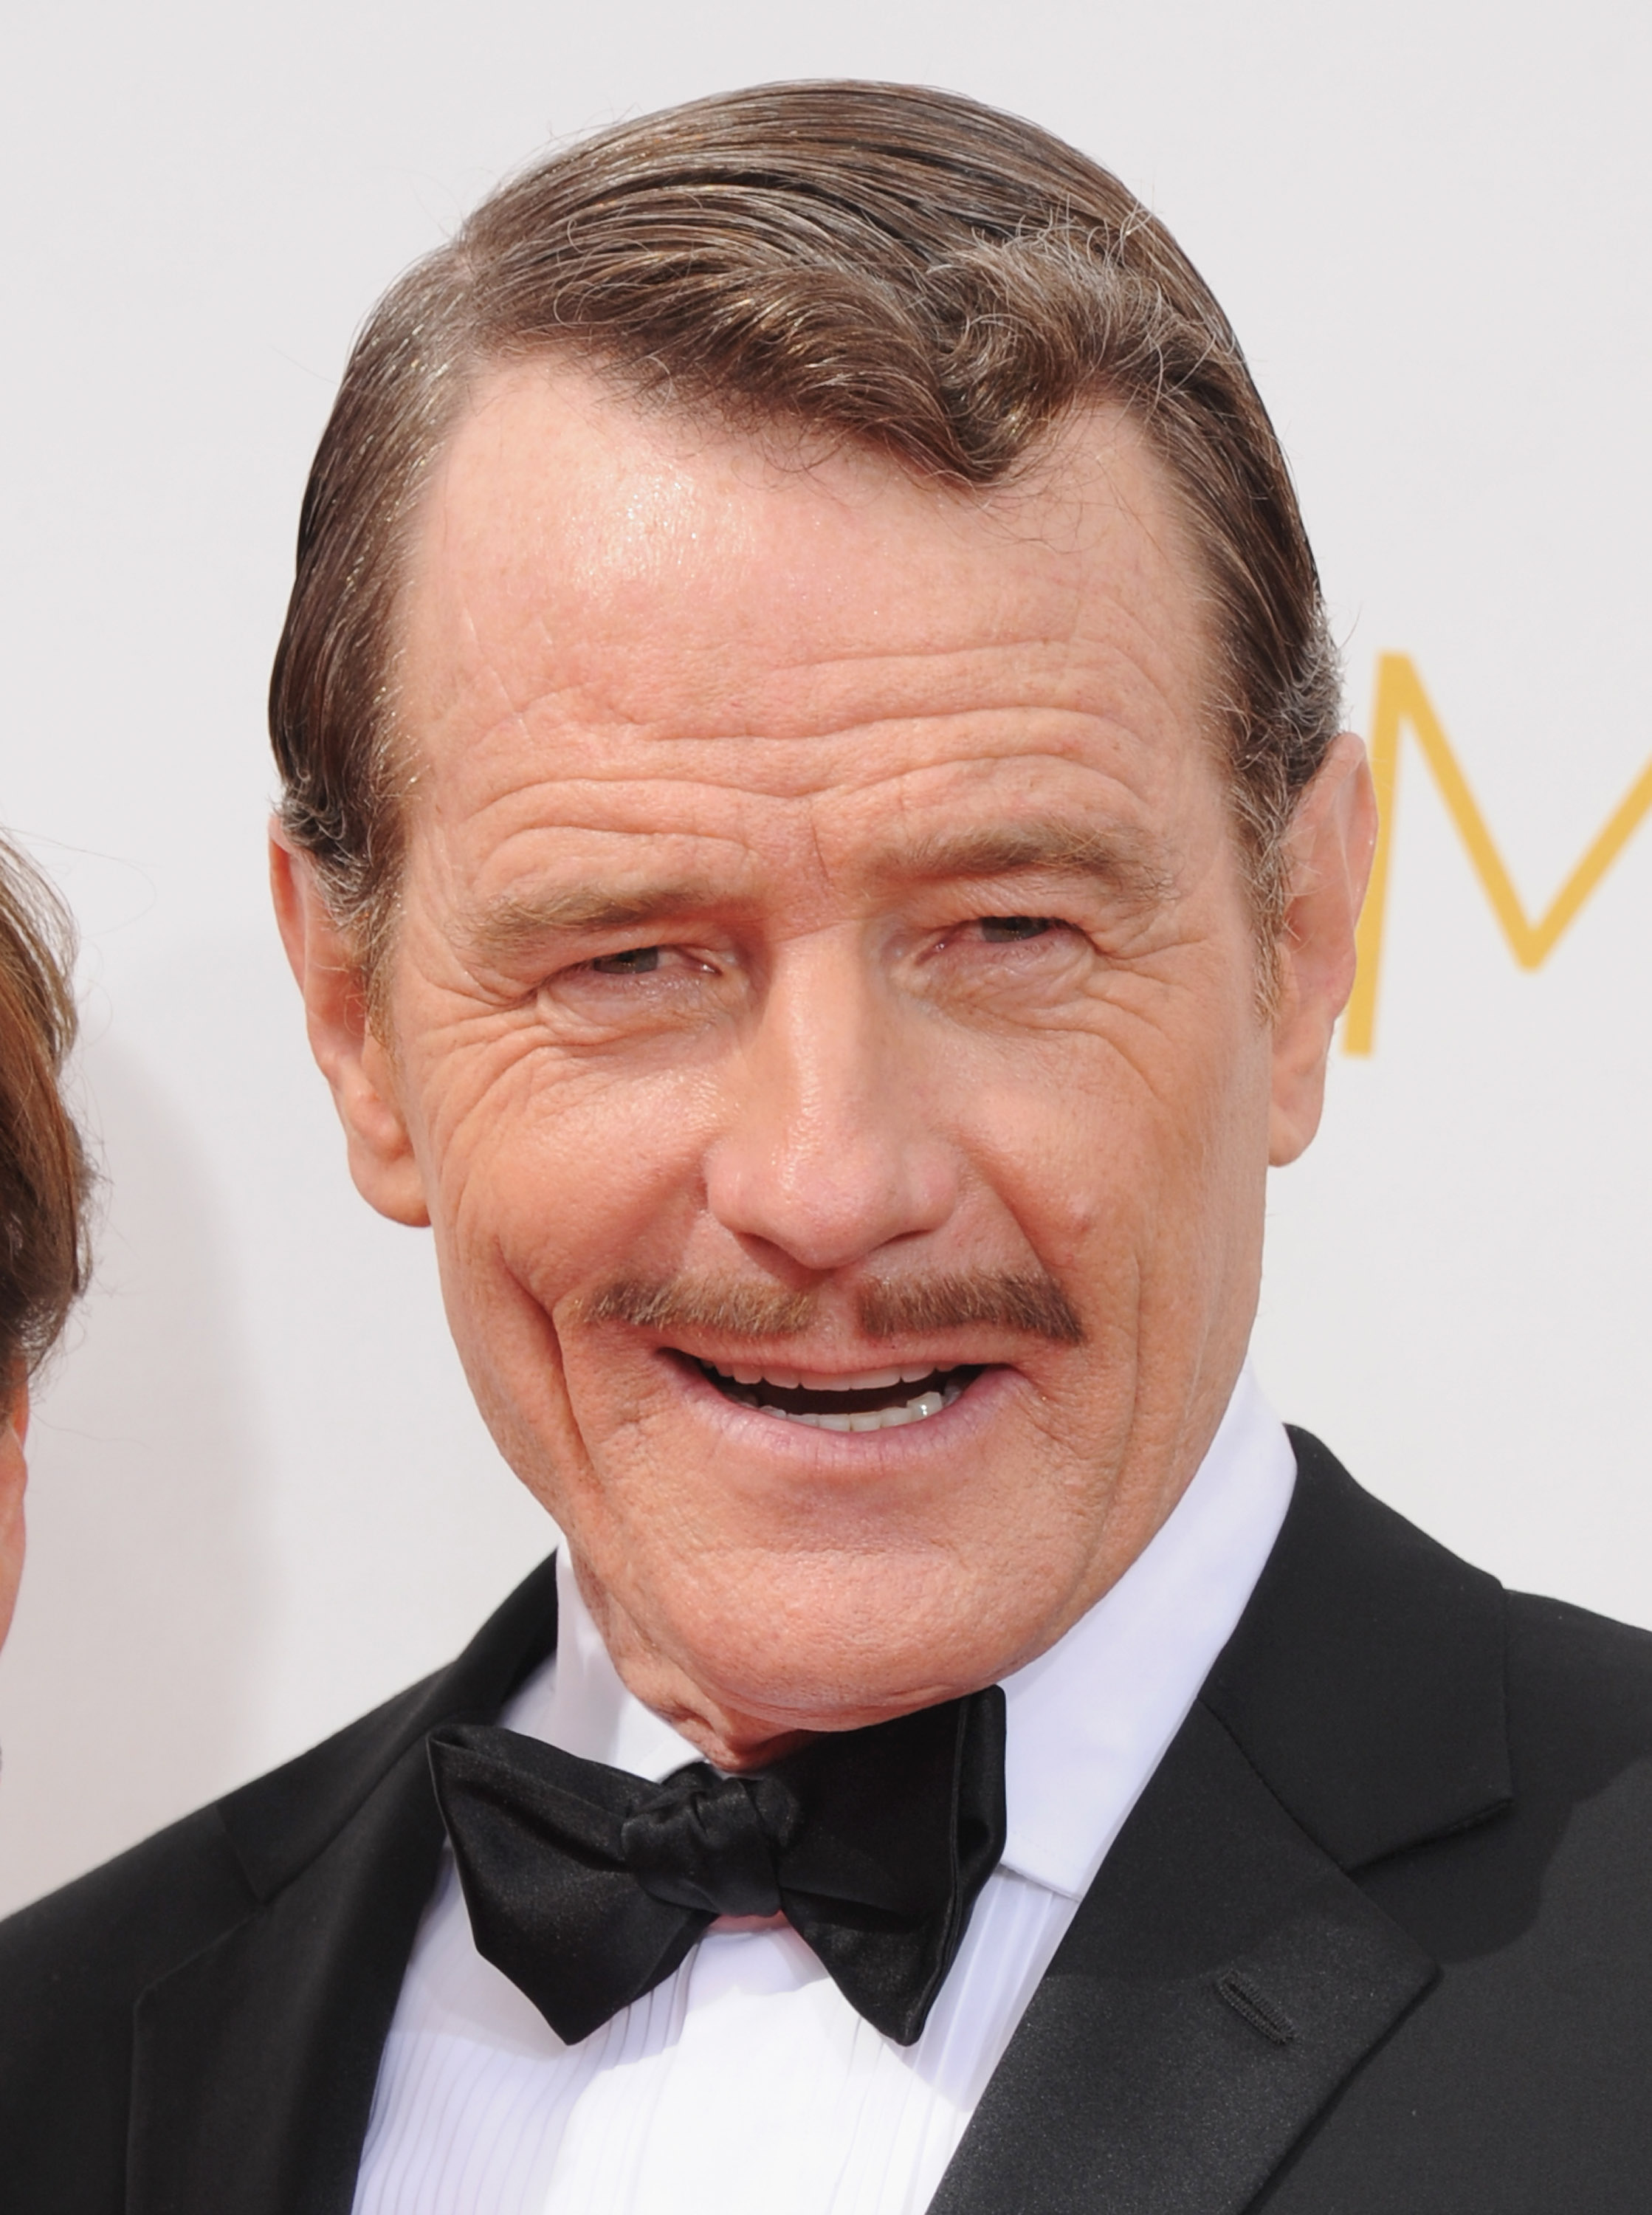 Actor Bryan Cranston arrives at the 66th Annual Primetime Emmy Awards